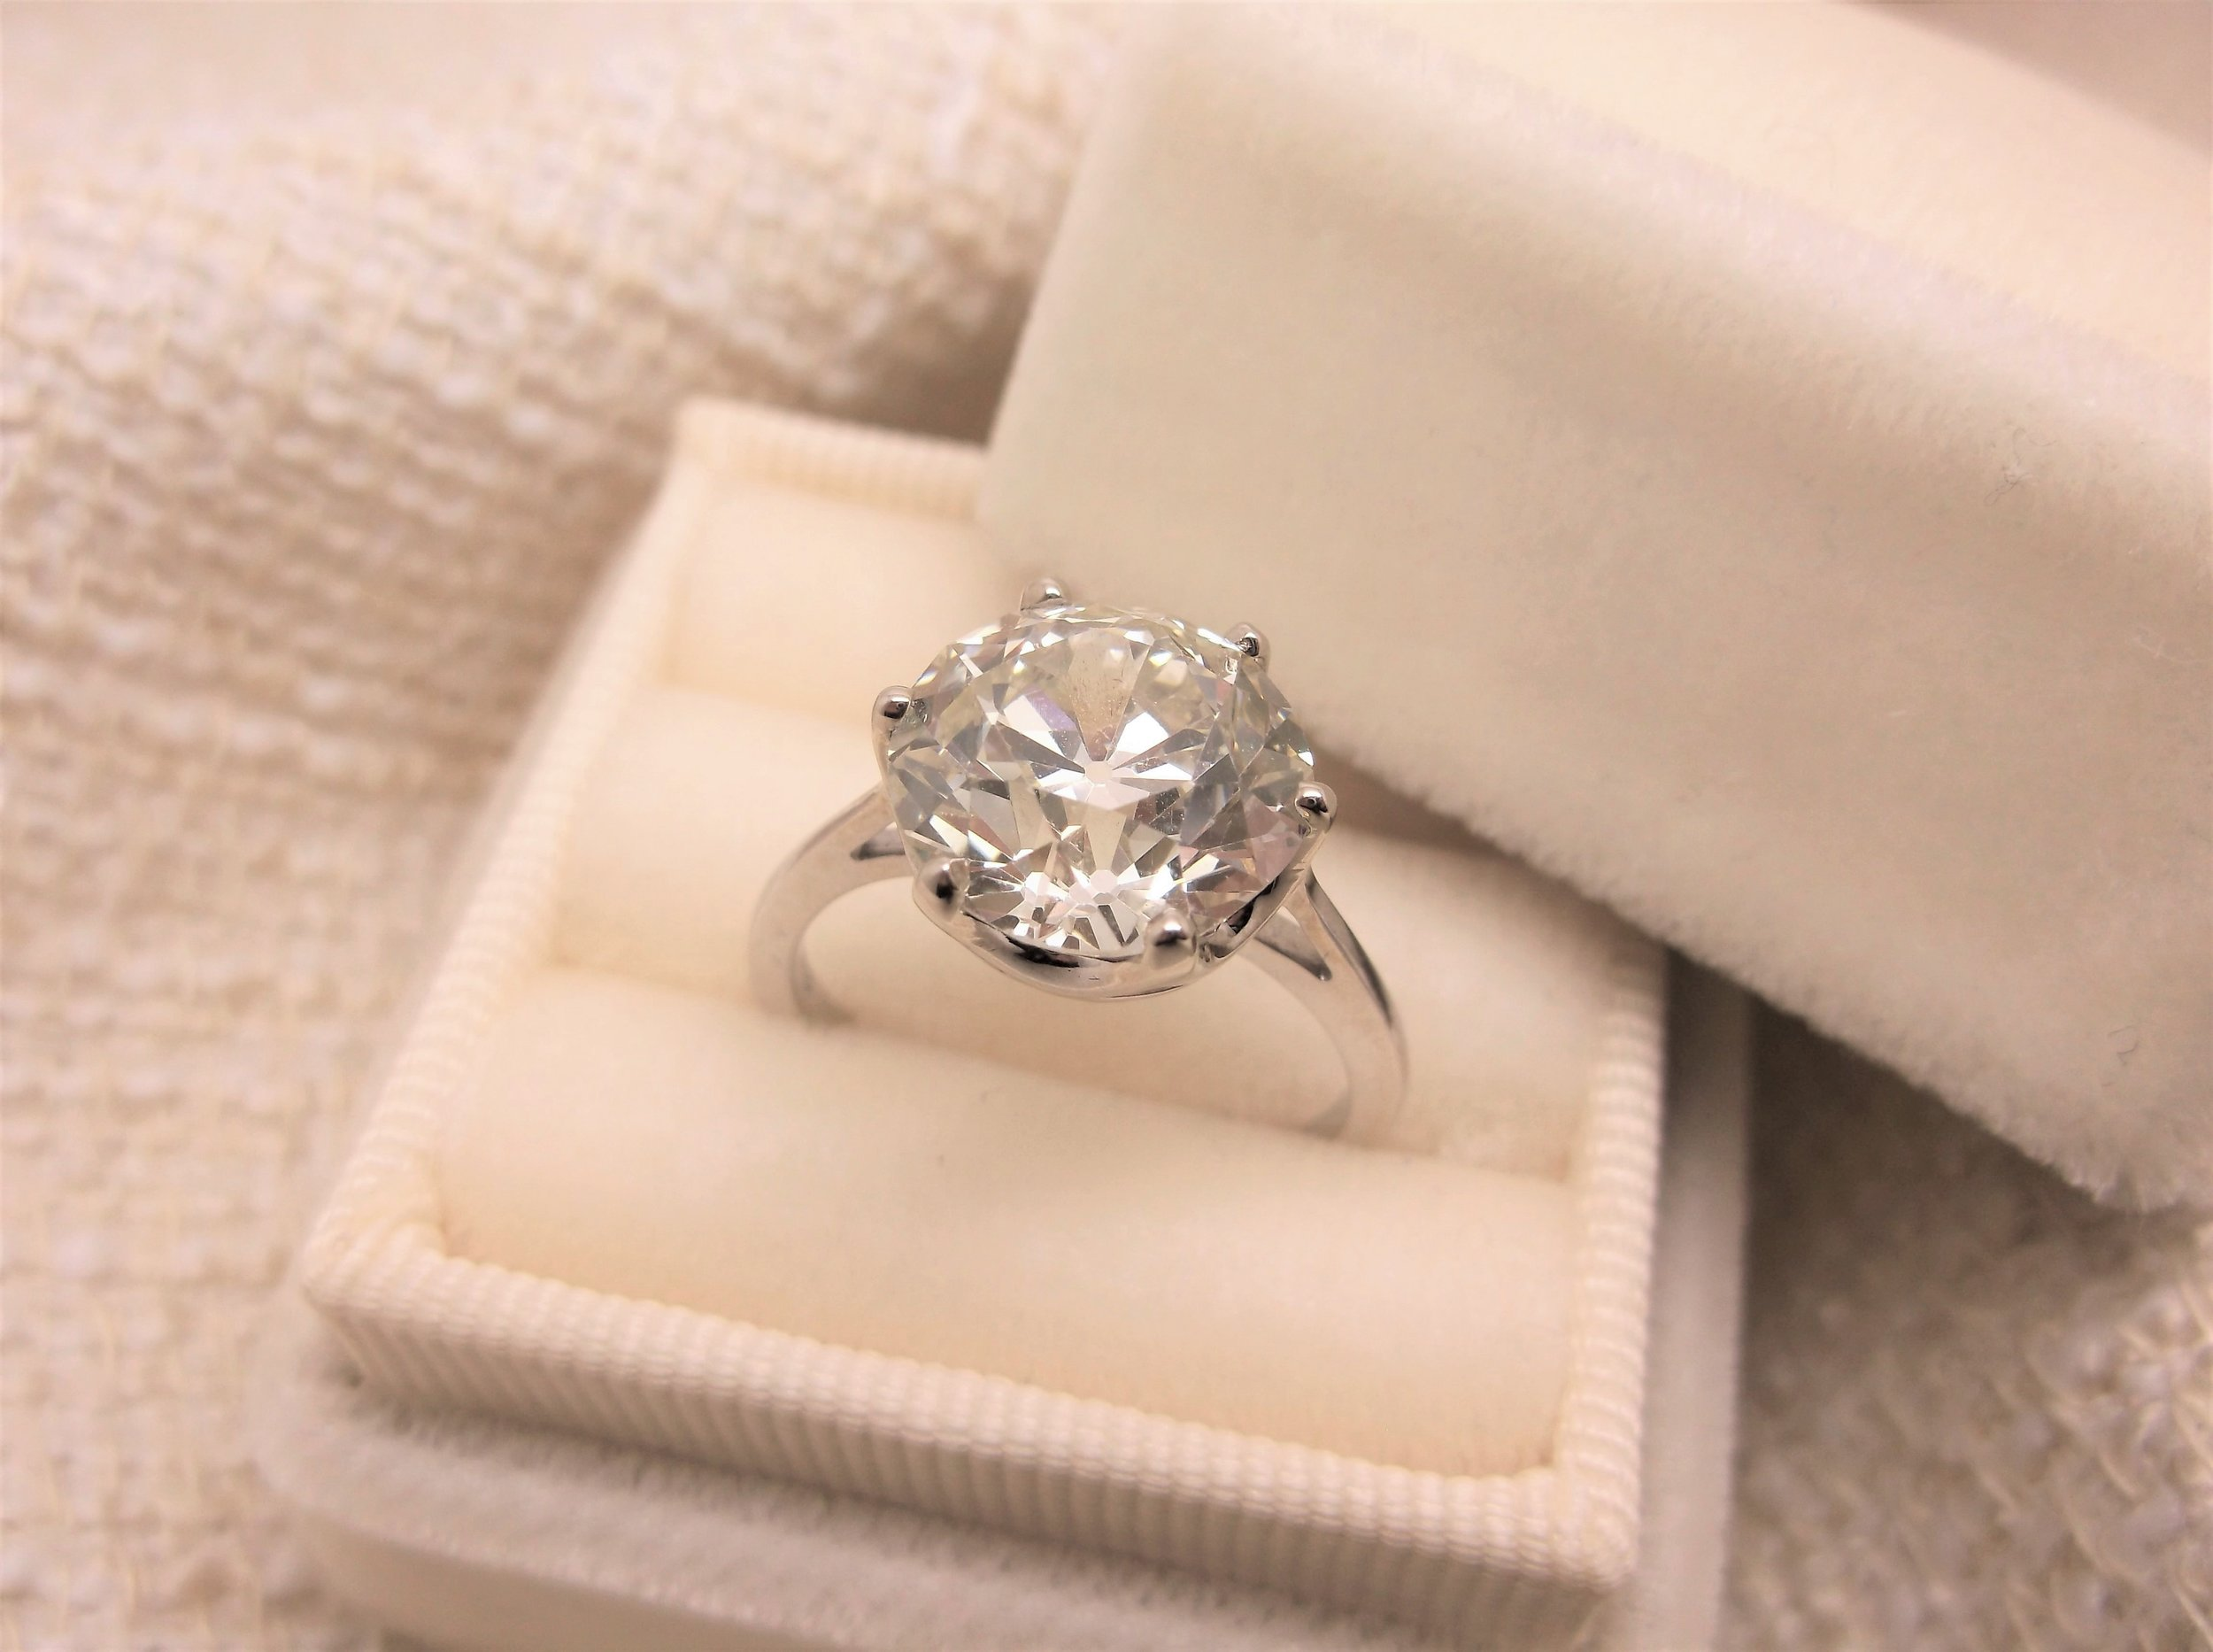 This stunning 5.04 carat Old European cut diamond is a timeless statement! Gorgeous on its own or paired with bands, you can do no wrong with this beauty!